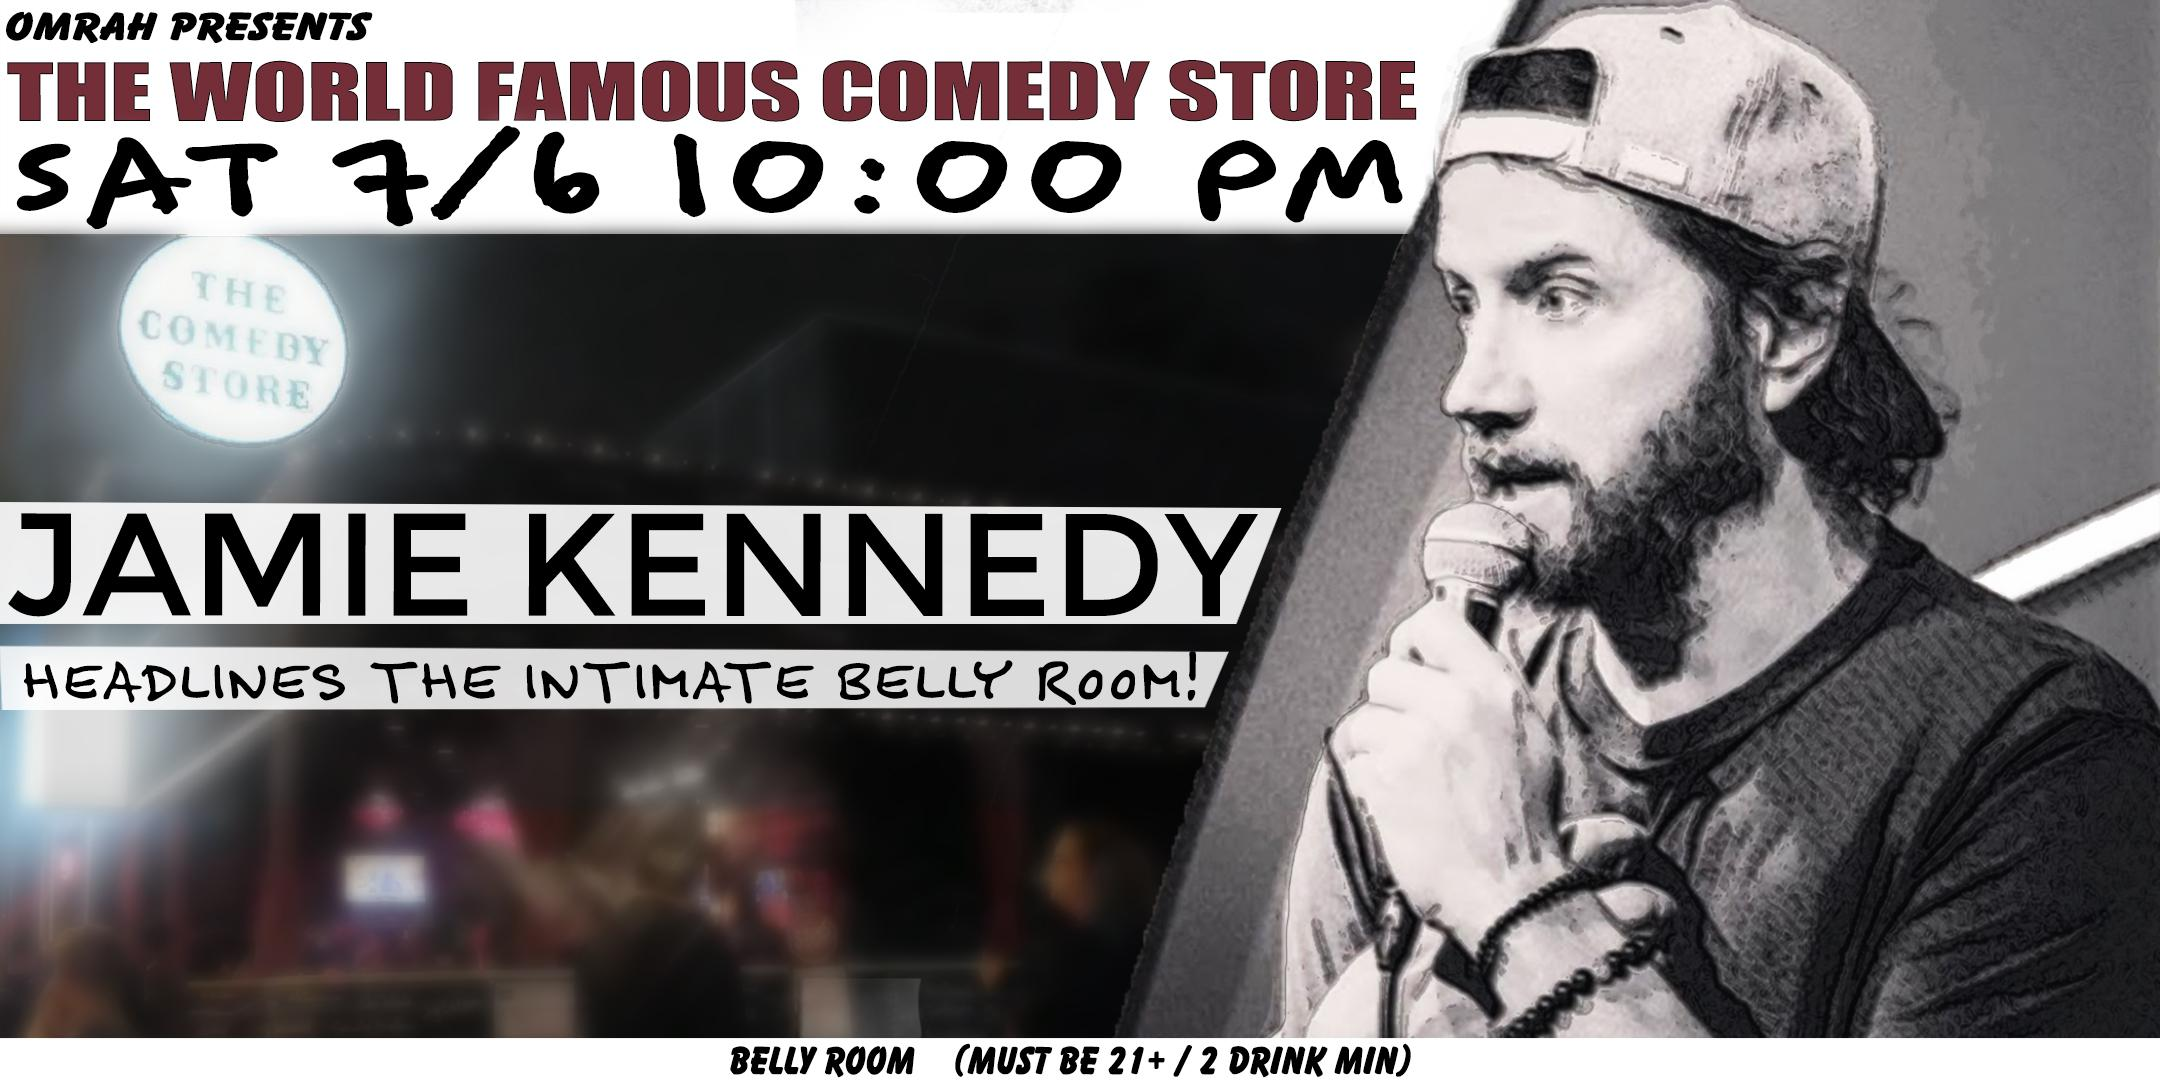 Omrah Presents Jamie Kennedy at The Comedy Store